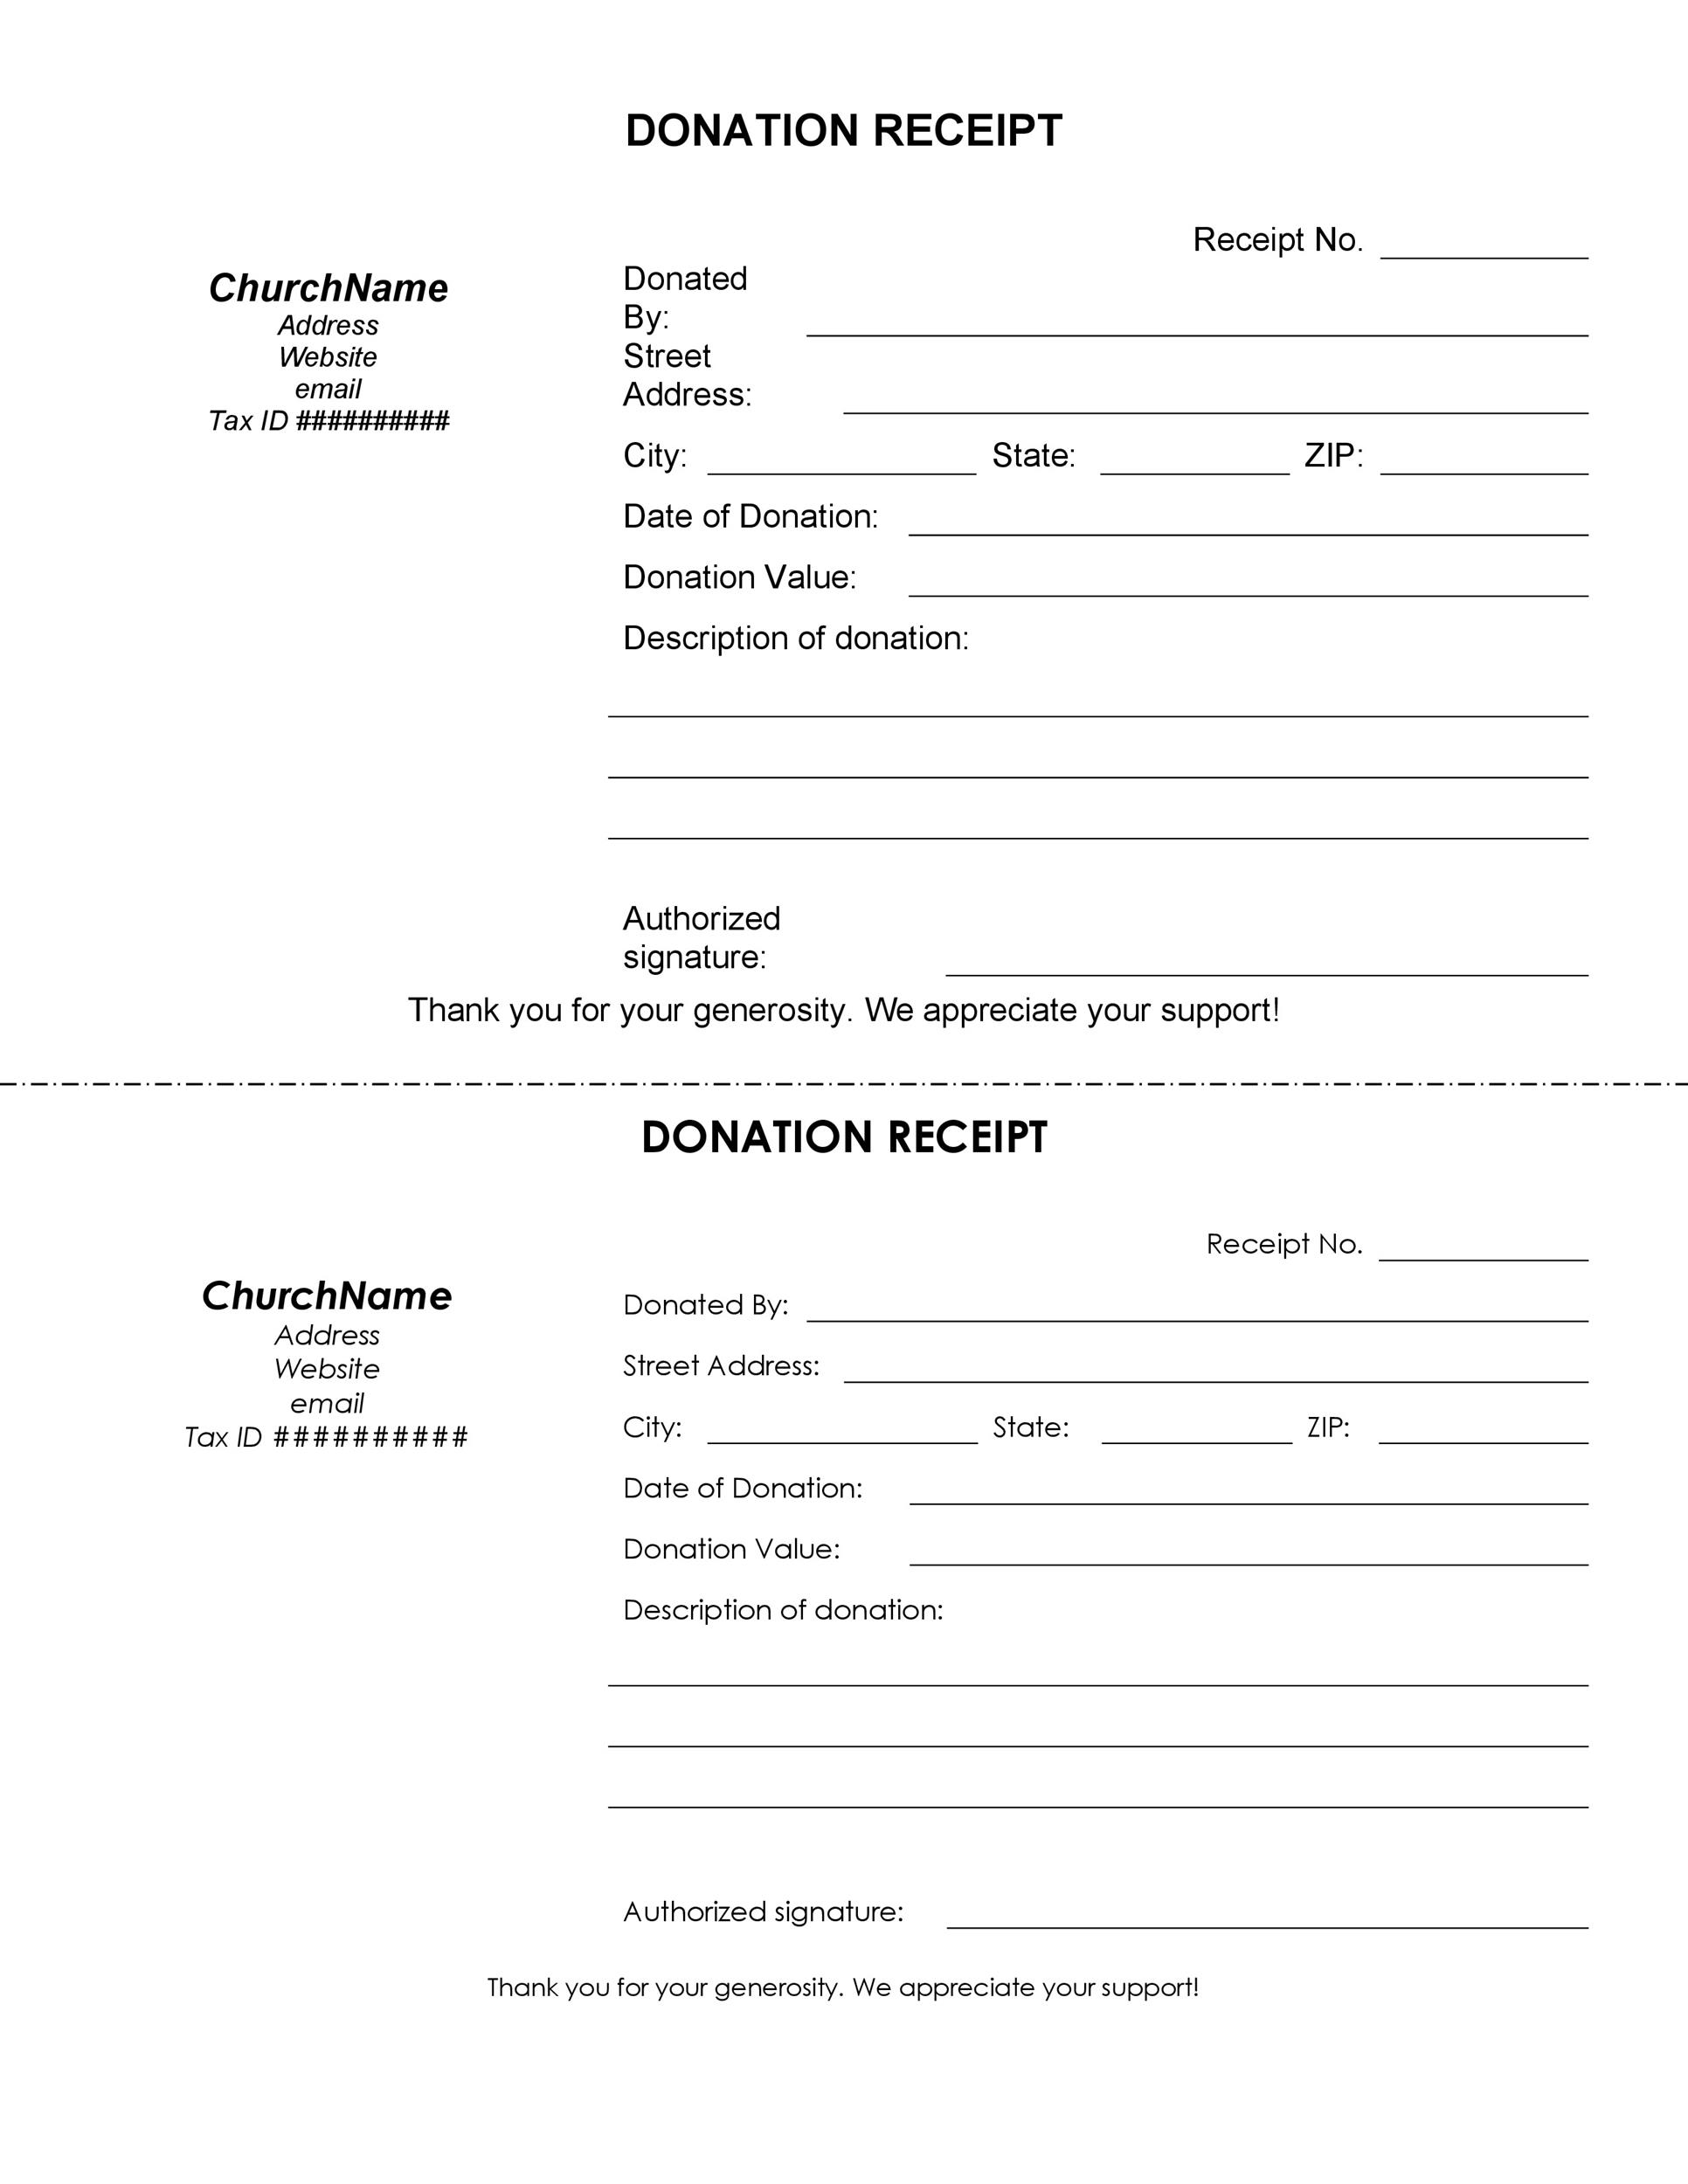 Free Receipt Templates Cash Sales Donation Taxi - Donation invoice template